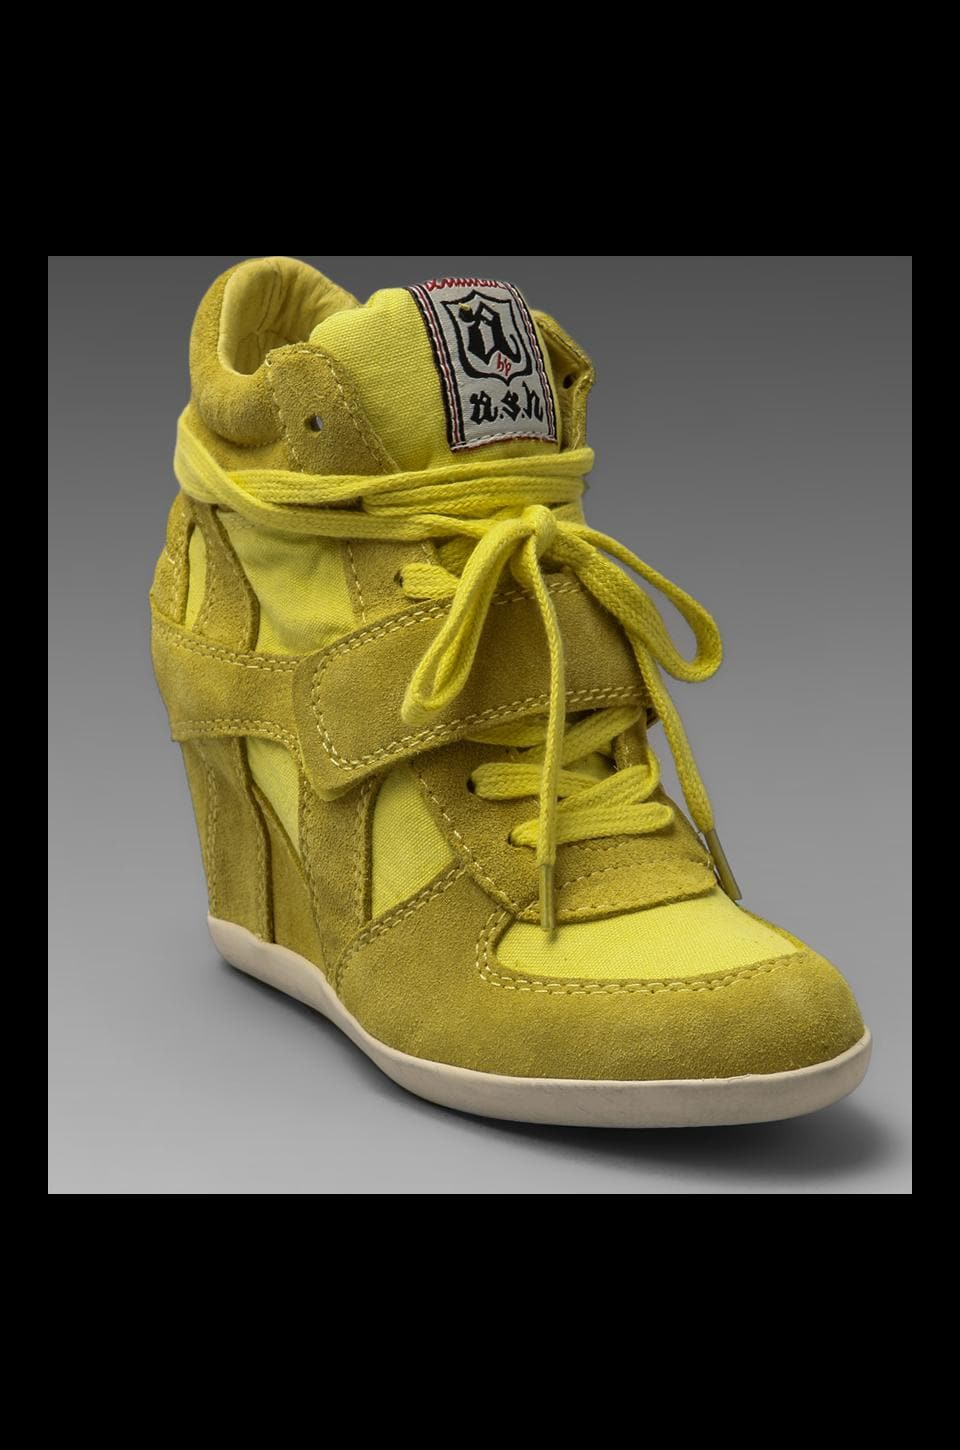 Ash Bowie Wedge Sneaker in Lemon